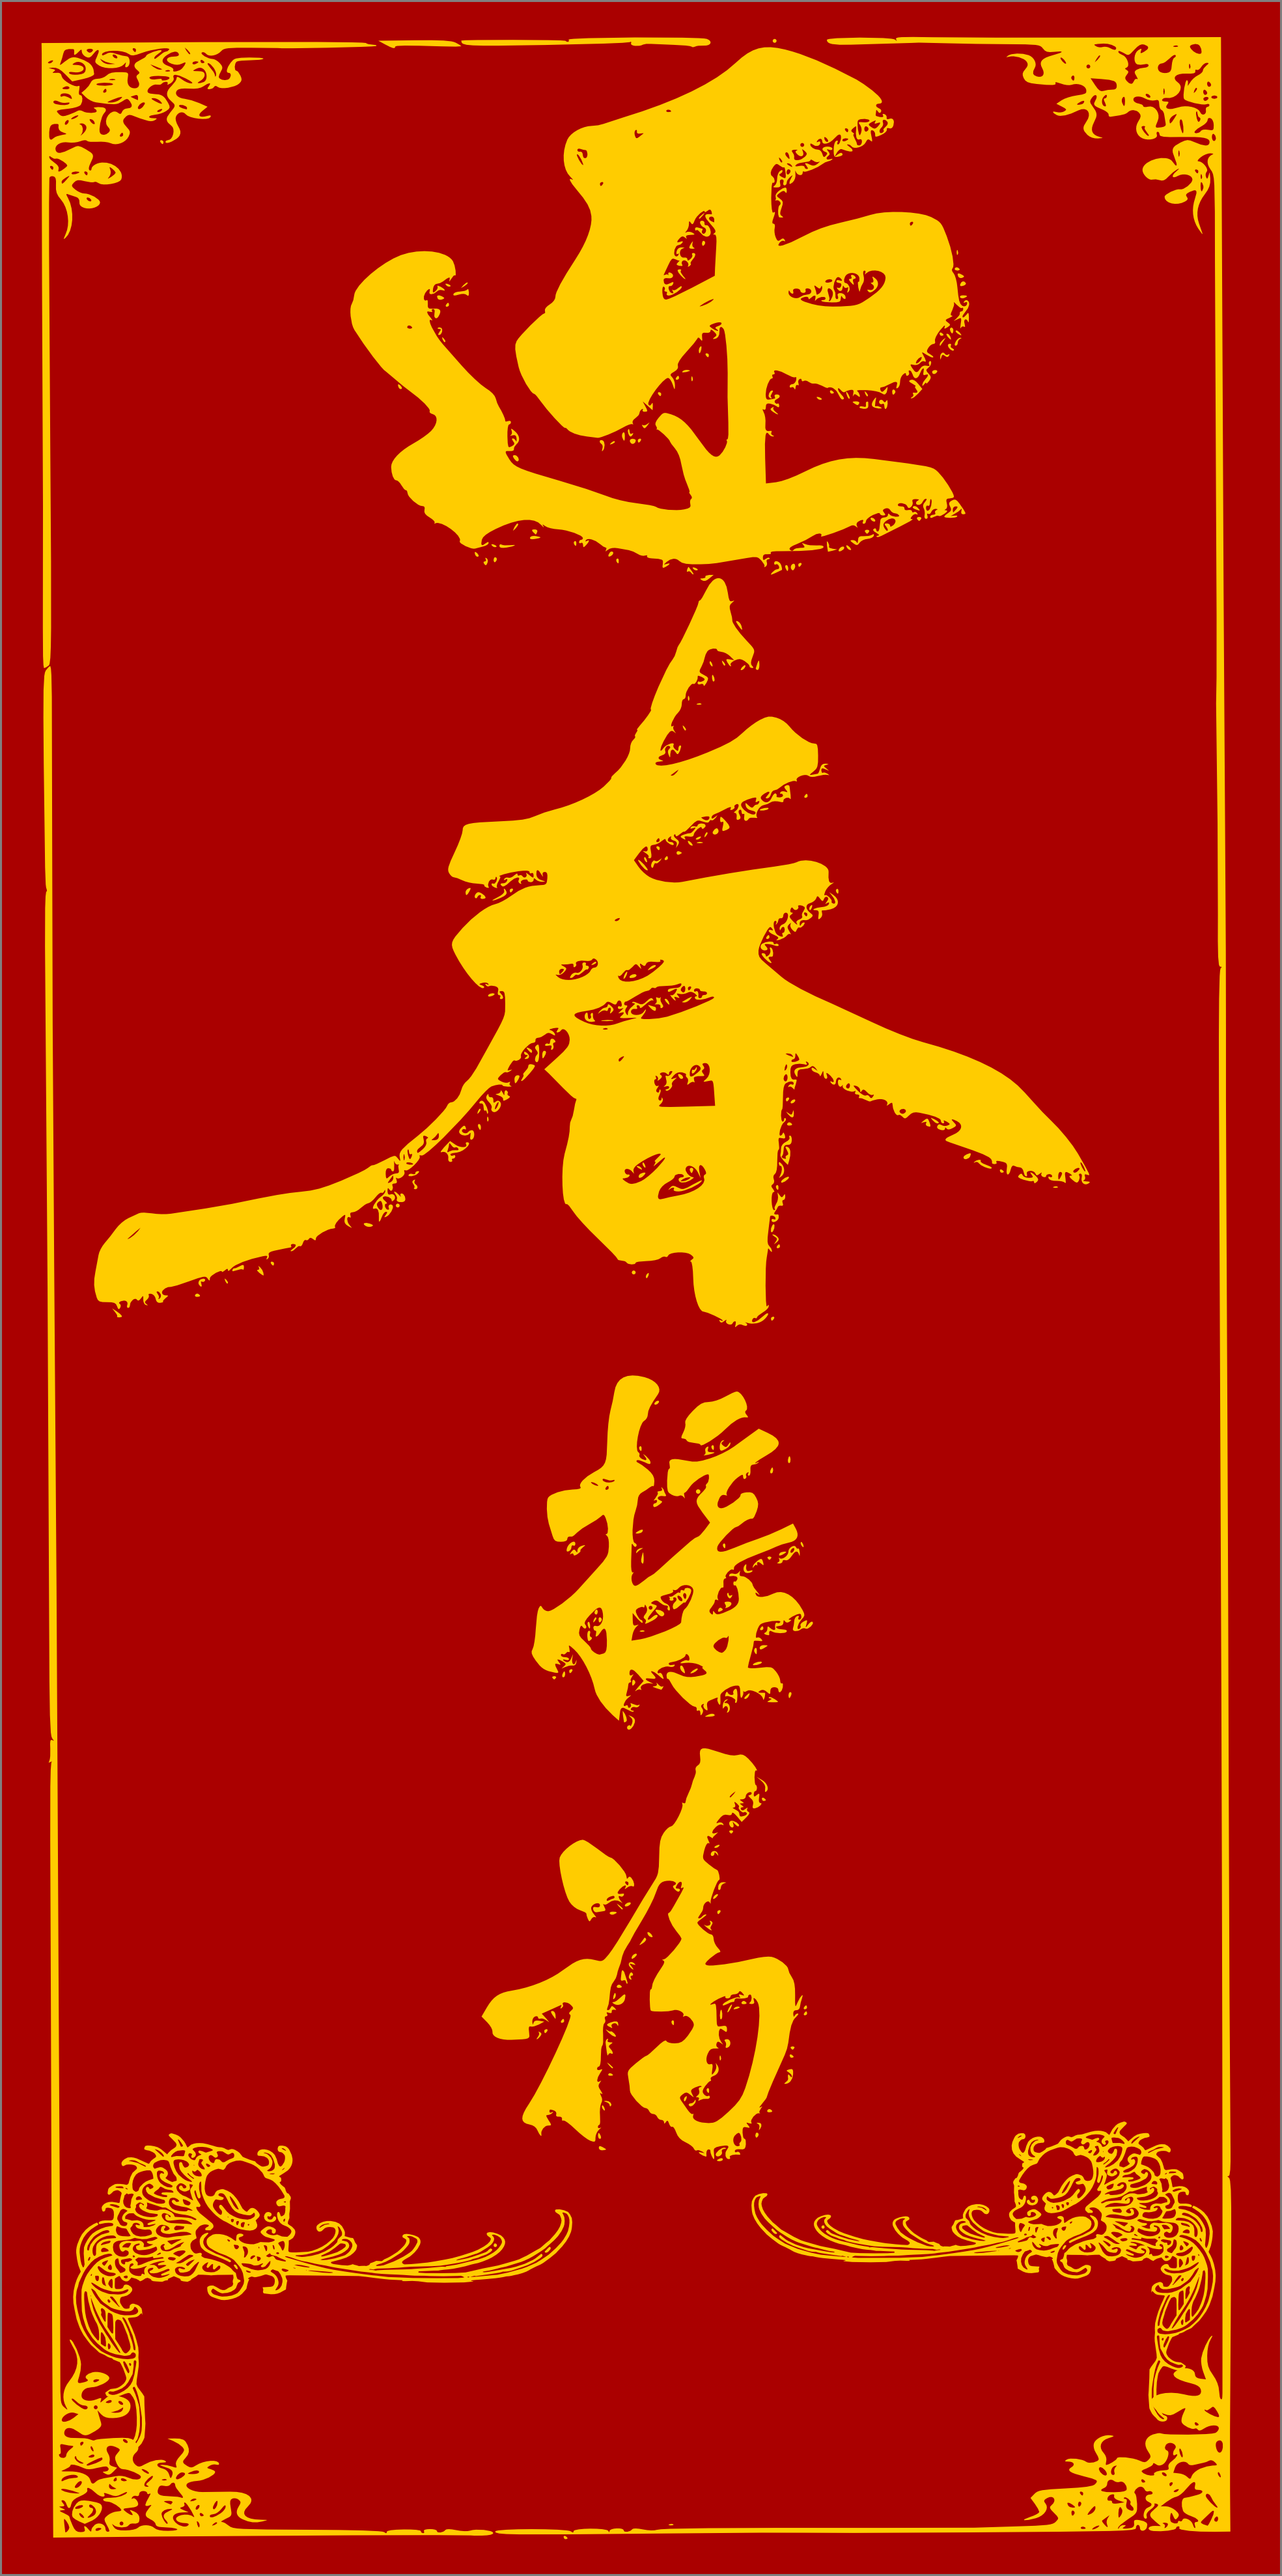 Chinese New Year HD PNG - 89178